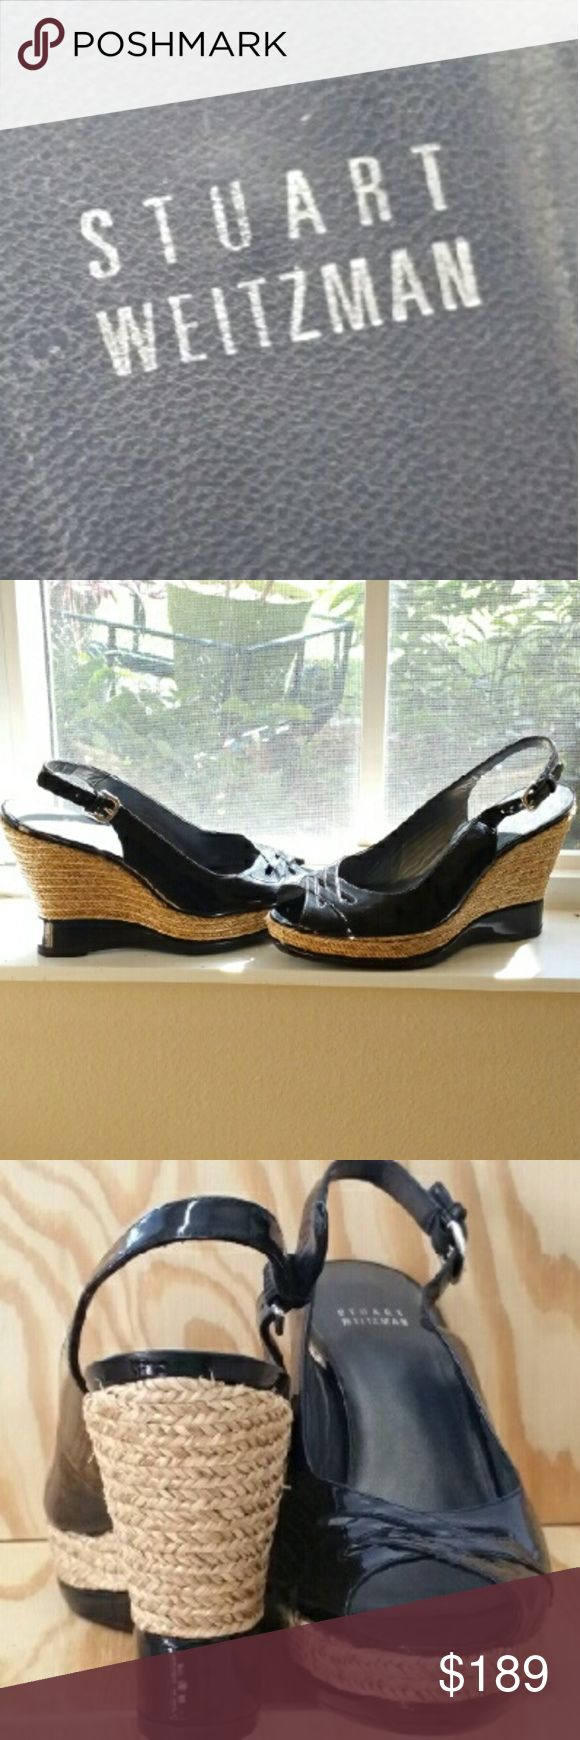 Stuart Weitzman Wedge Stuart Weitzman Patent leather peep toe slingback espadrille wedge pump. Say That 3x fast! These shoes have everything going for them. SW shoes= classics & can be worn w/ everything you own for years! 4.5 Heel 1 Wedge adjustable @ an